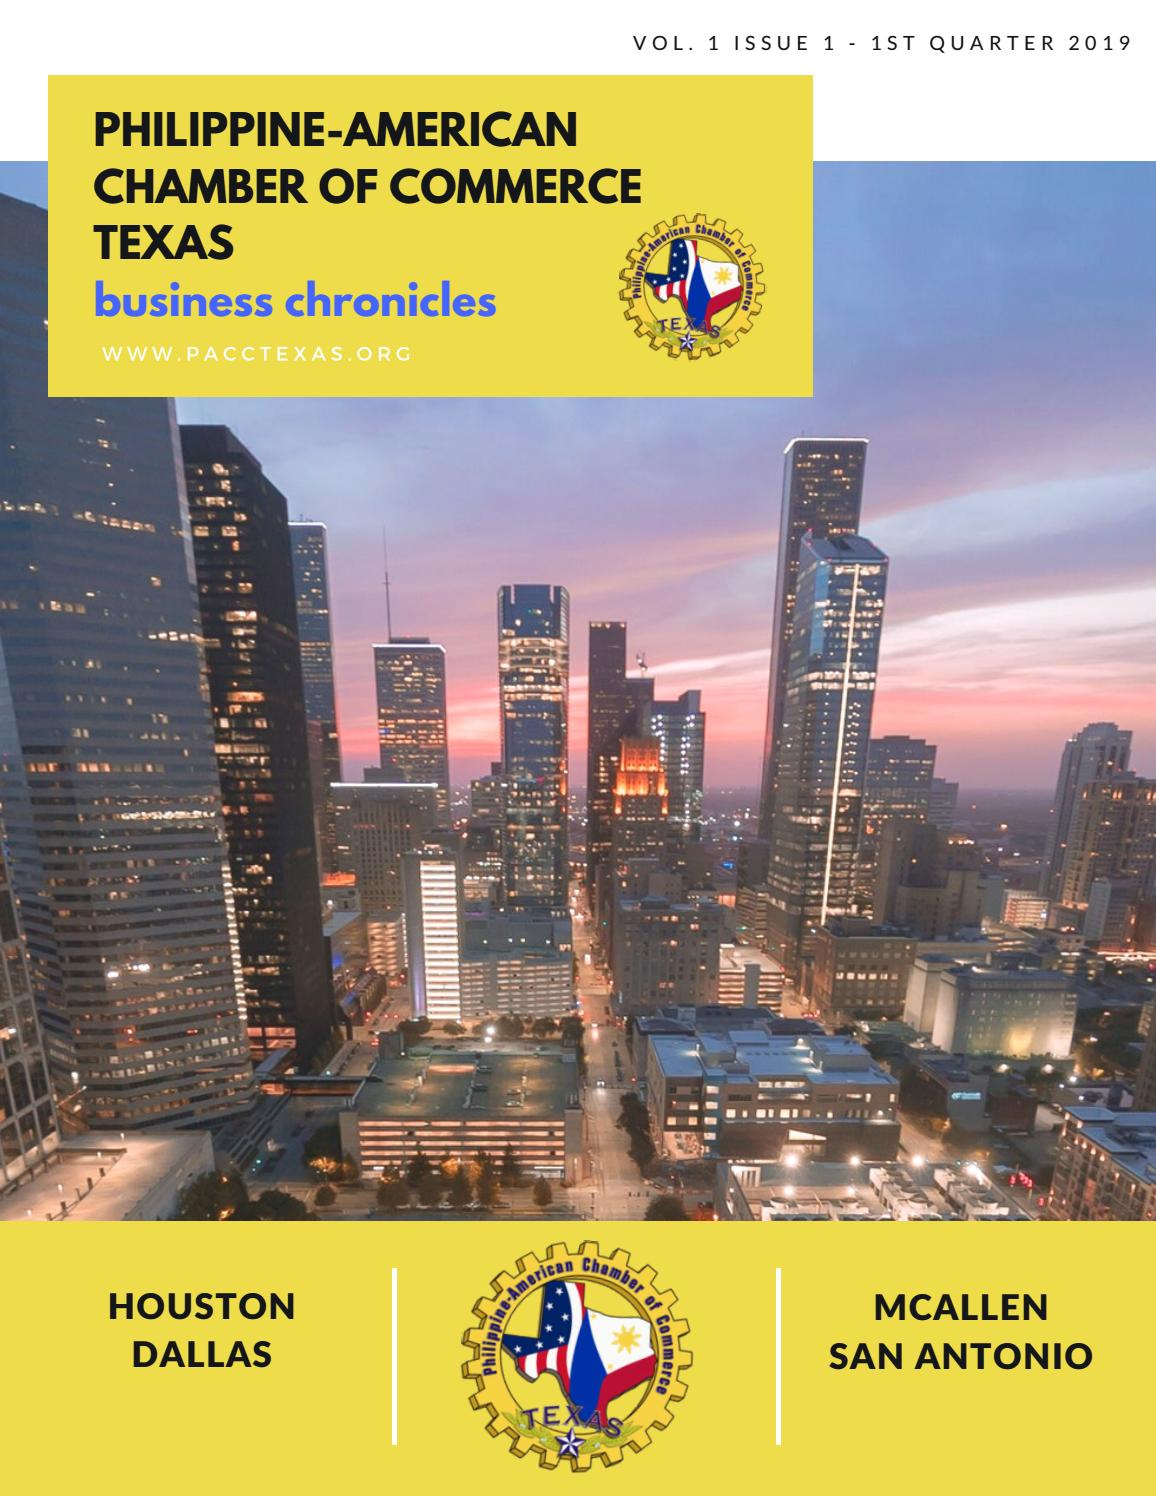 PACC TX BUSINESS CHRONICLES NEWSLETTER VOL 1 ISS 1 1Q19 by